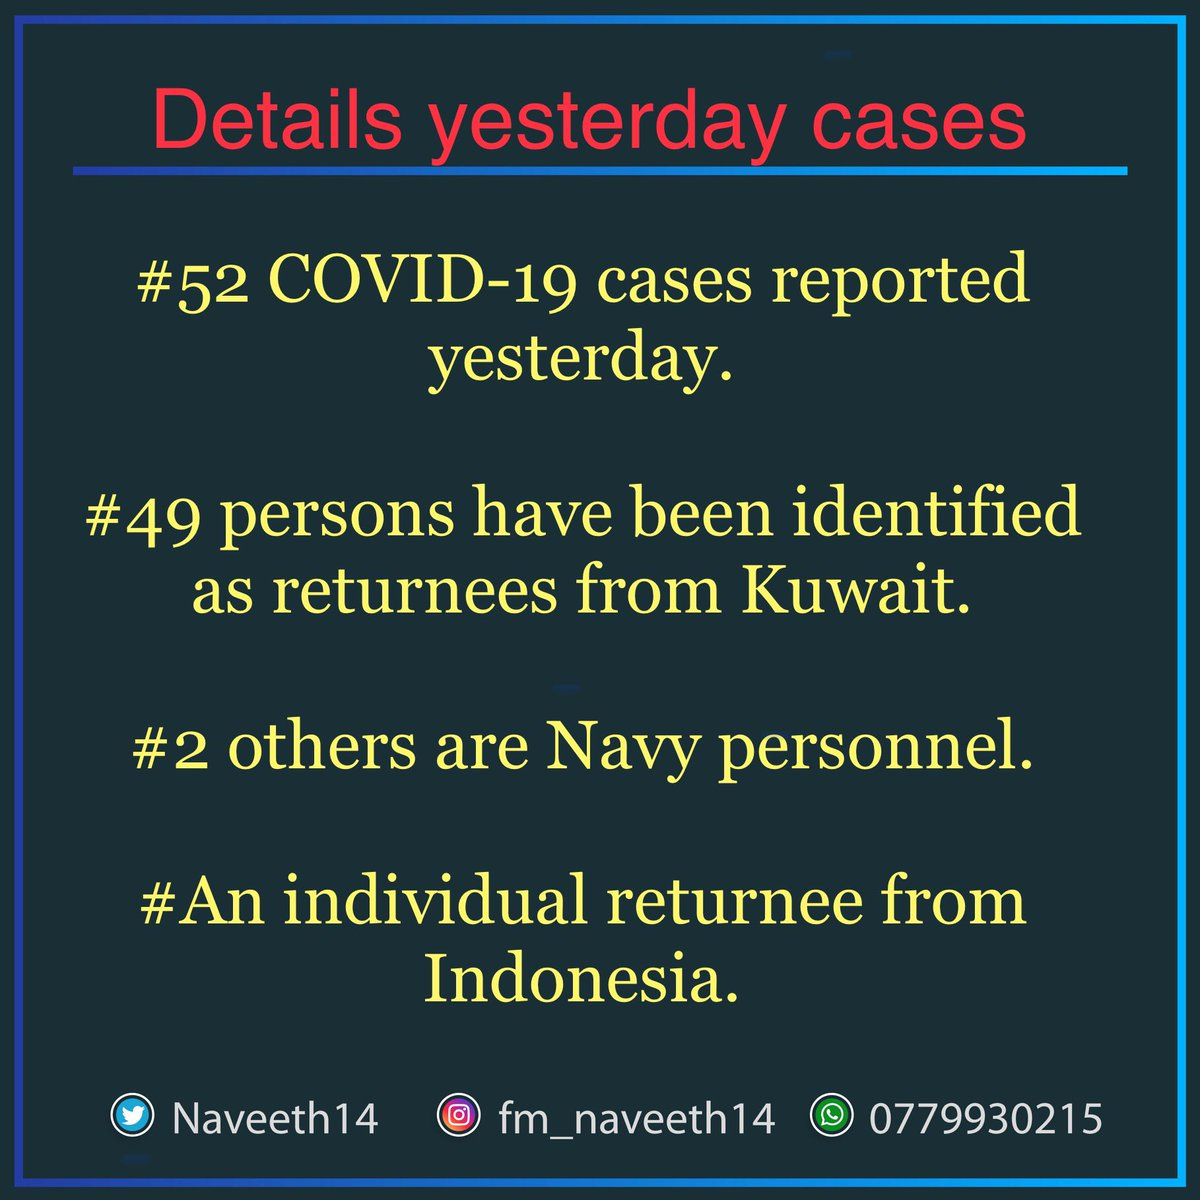 Details of yesterday reported cases. 52 cases reported and 49 of them are returnees from #Kuwait, 2 are #Navy personals and an individual from #Indonesia.  #details #yesterday #srilanka #lanka #lka #corona #coronavirus #COVID19 #staysafe #StayHome#TogetherWeCanpic.twitter.com/fgCzjbS7i9